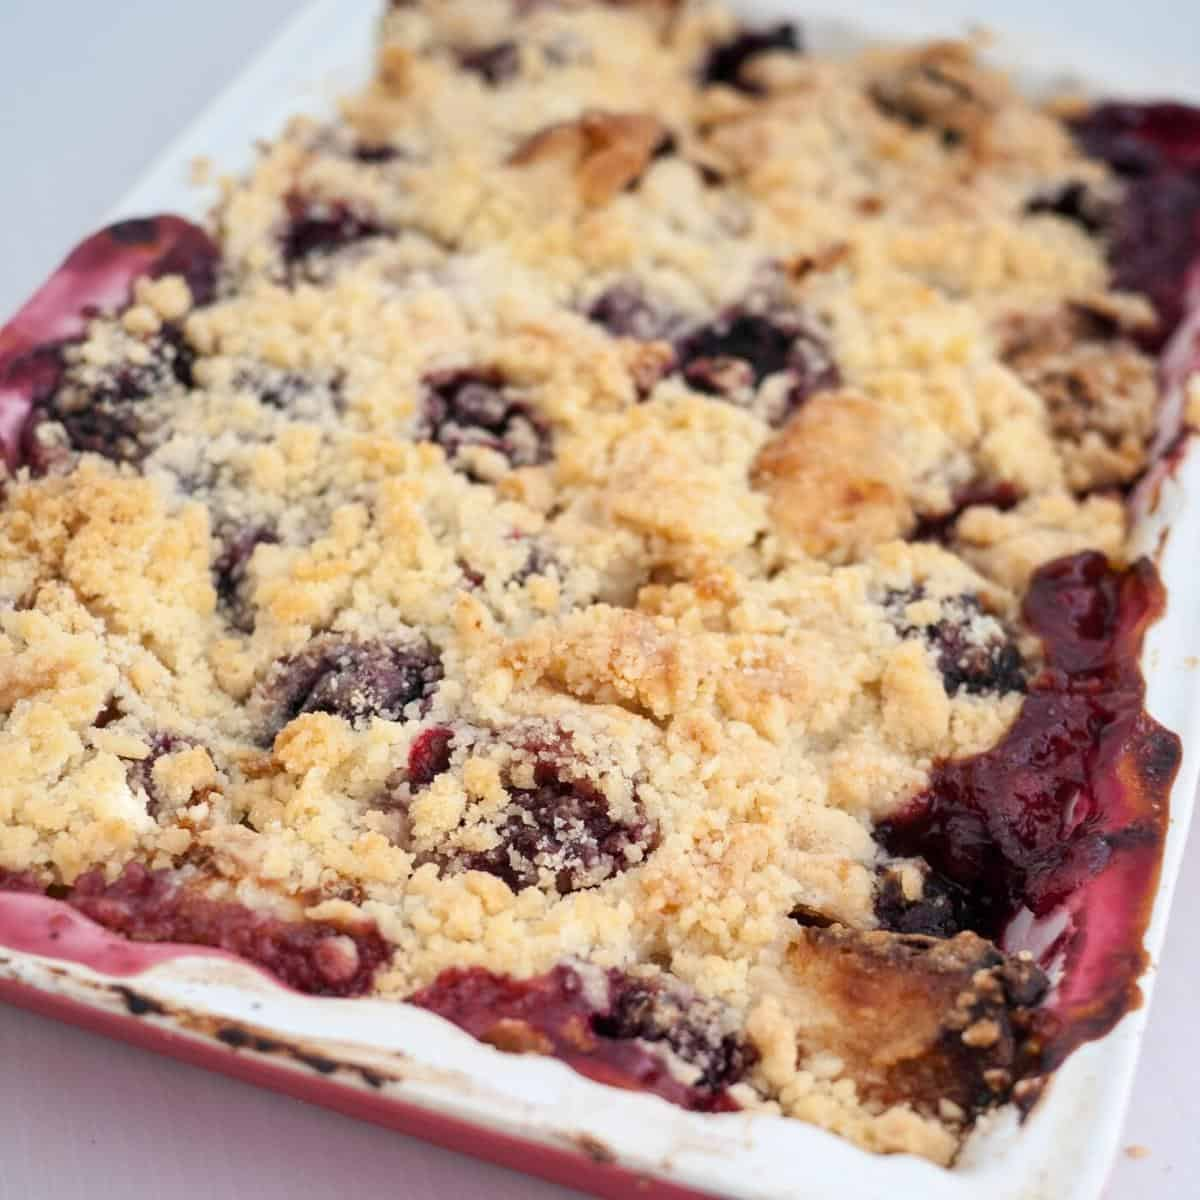 Baking tray with fruit crumble recipe.